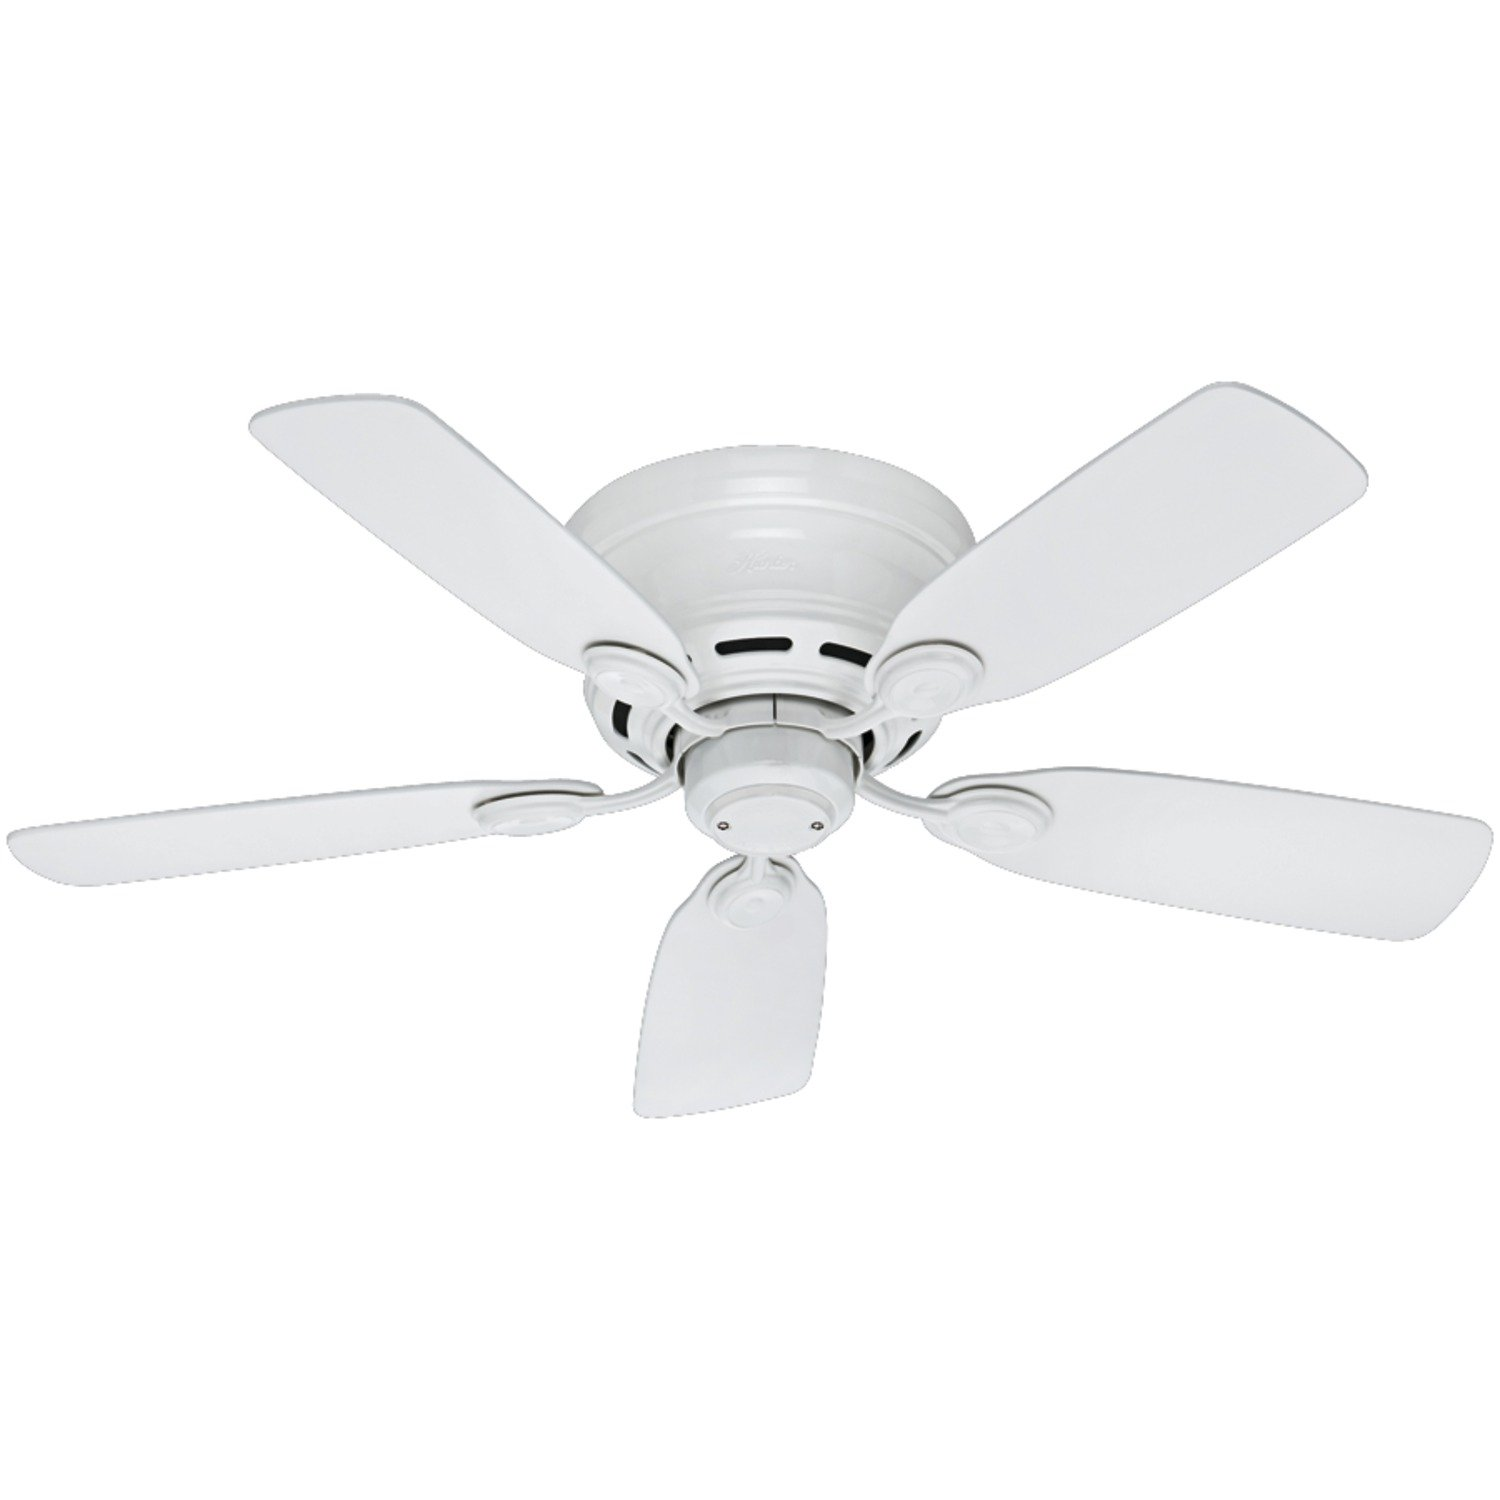 Hunter 51059 Low Profile IV 5 Blade Ceiling Fan, 42 Inch, White